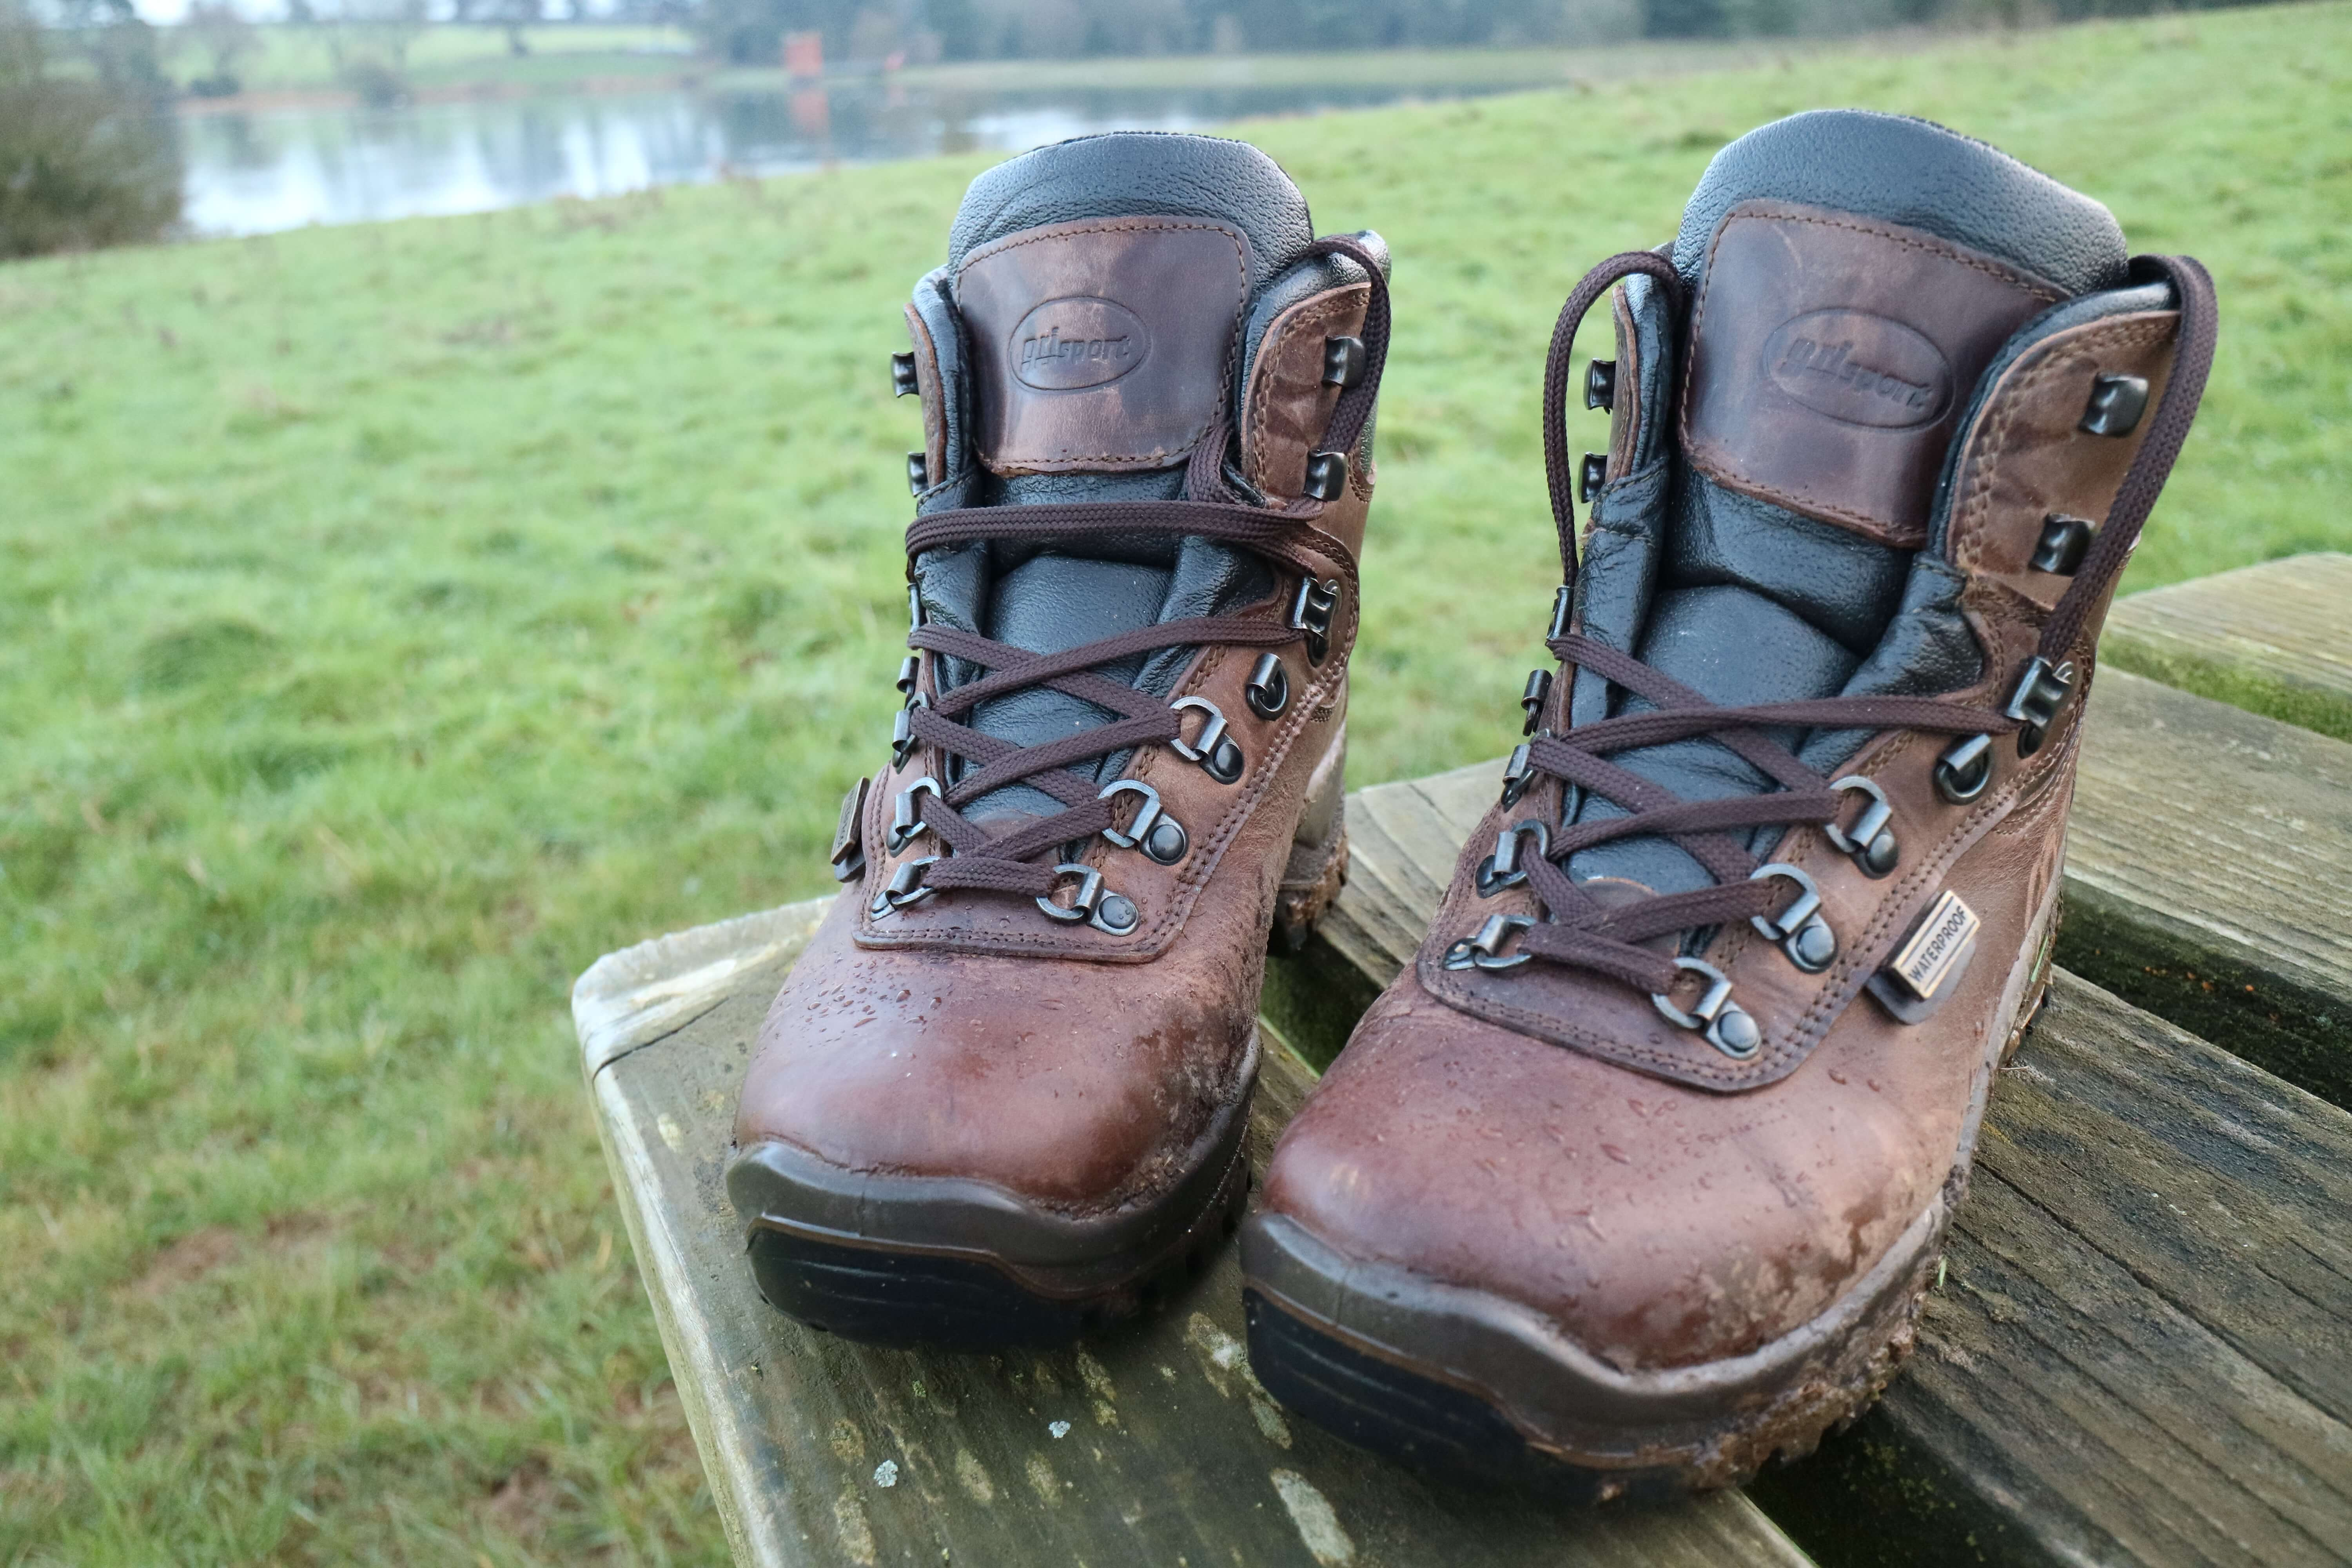 54192a28340 Review: Grisport 'Timber' Walking Boots | The Helpful Hiker